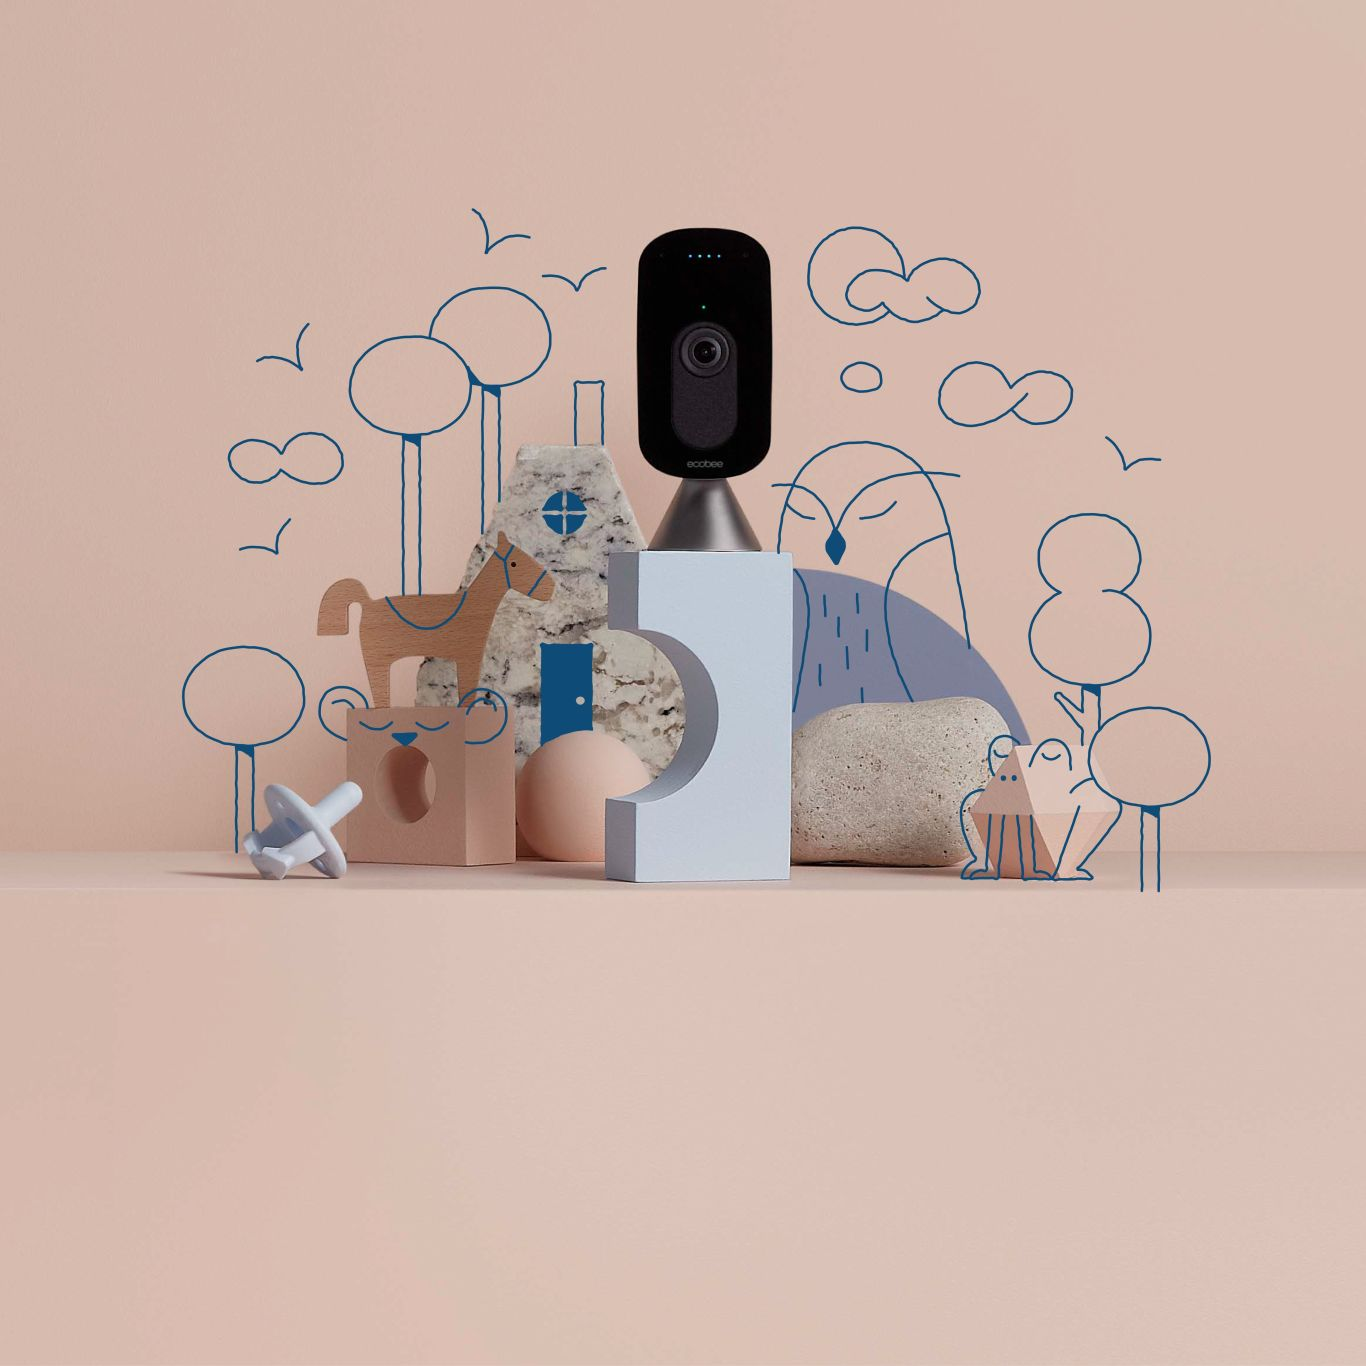 The ecobee SmartCamera sits amongst blue and pink blocks and toys.